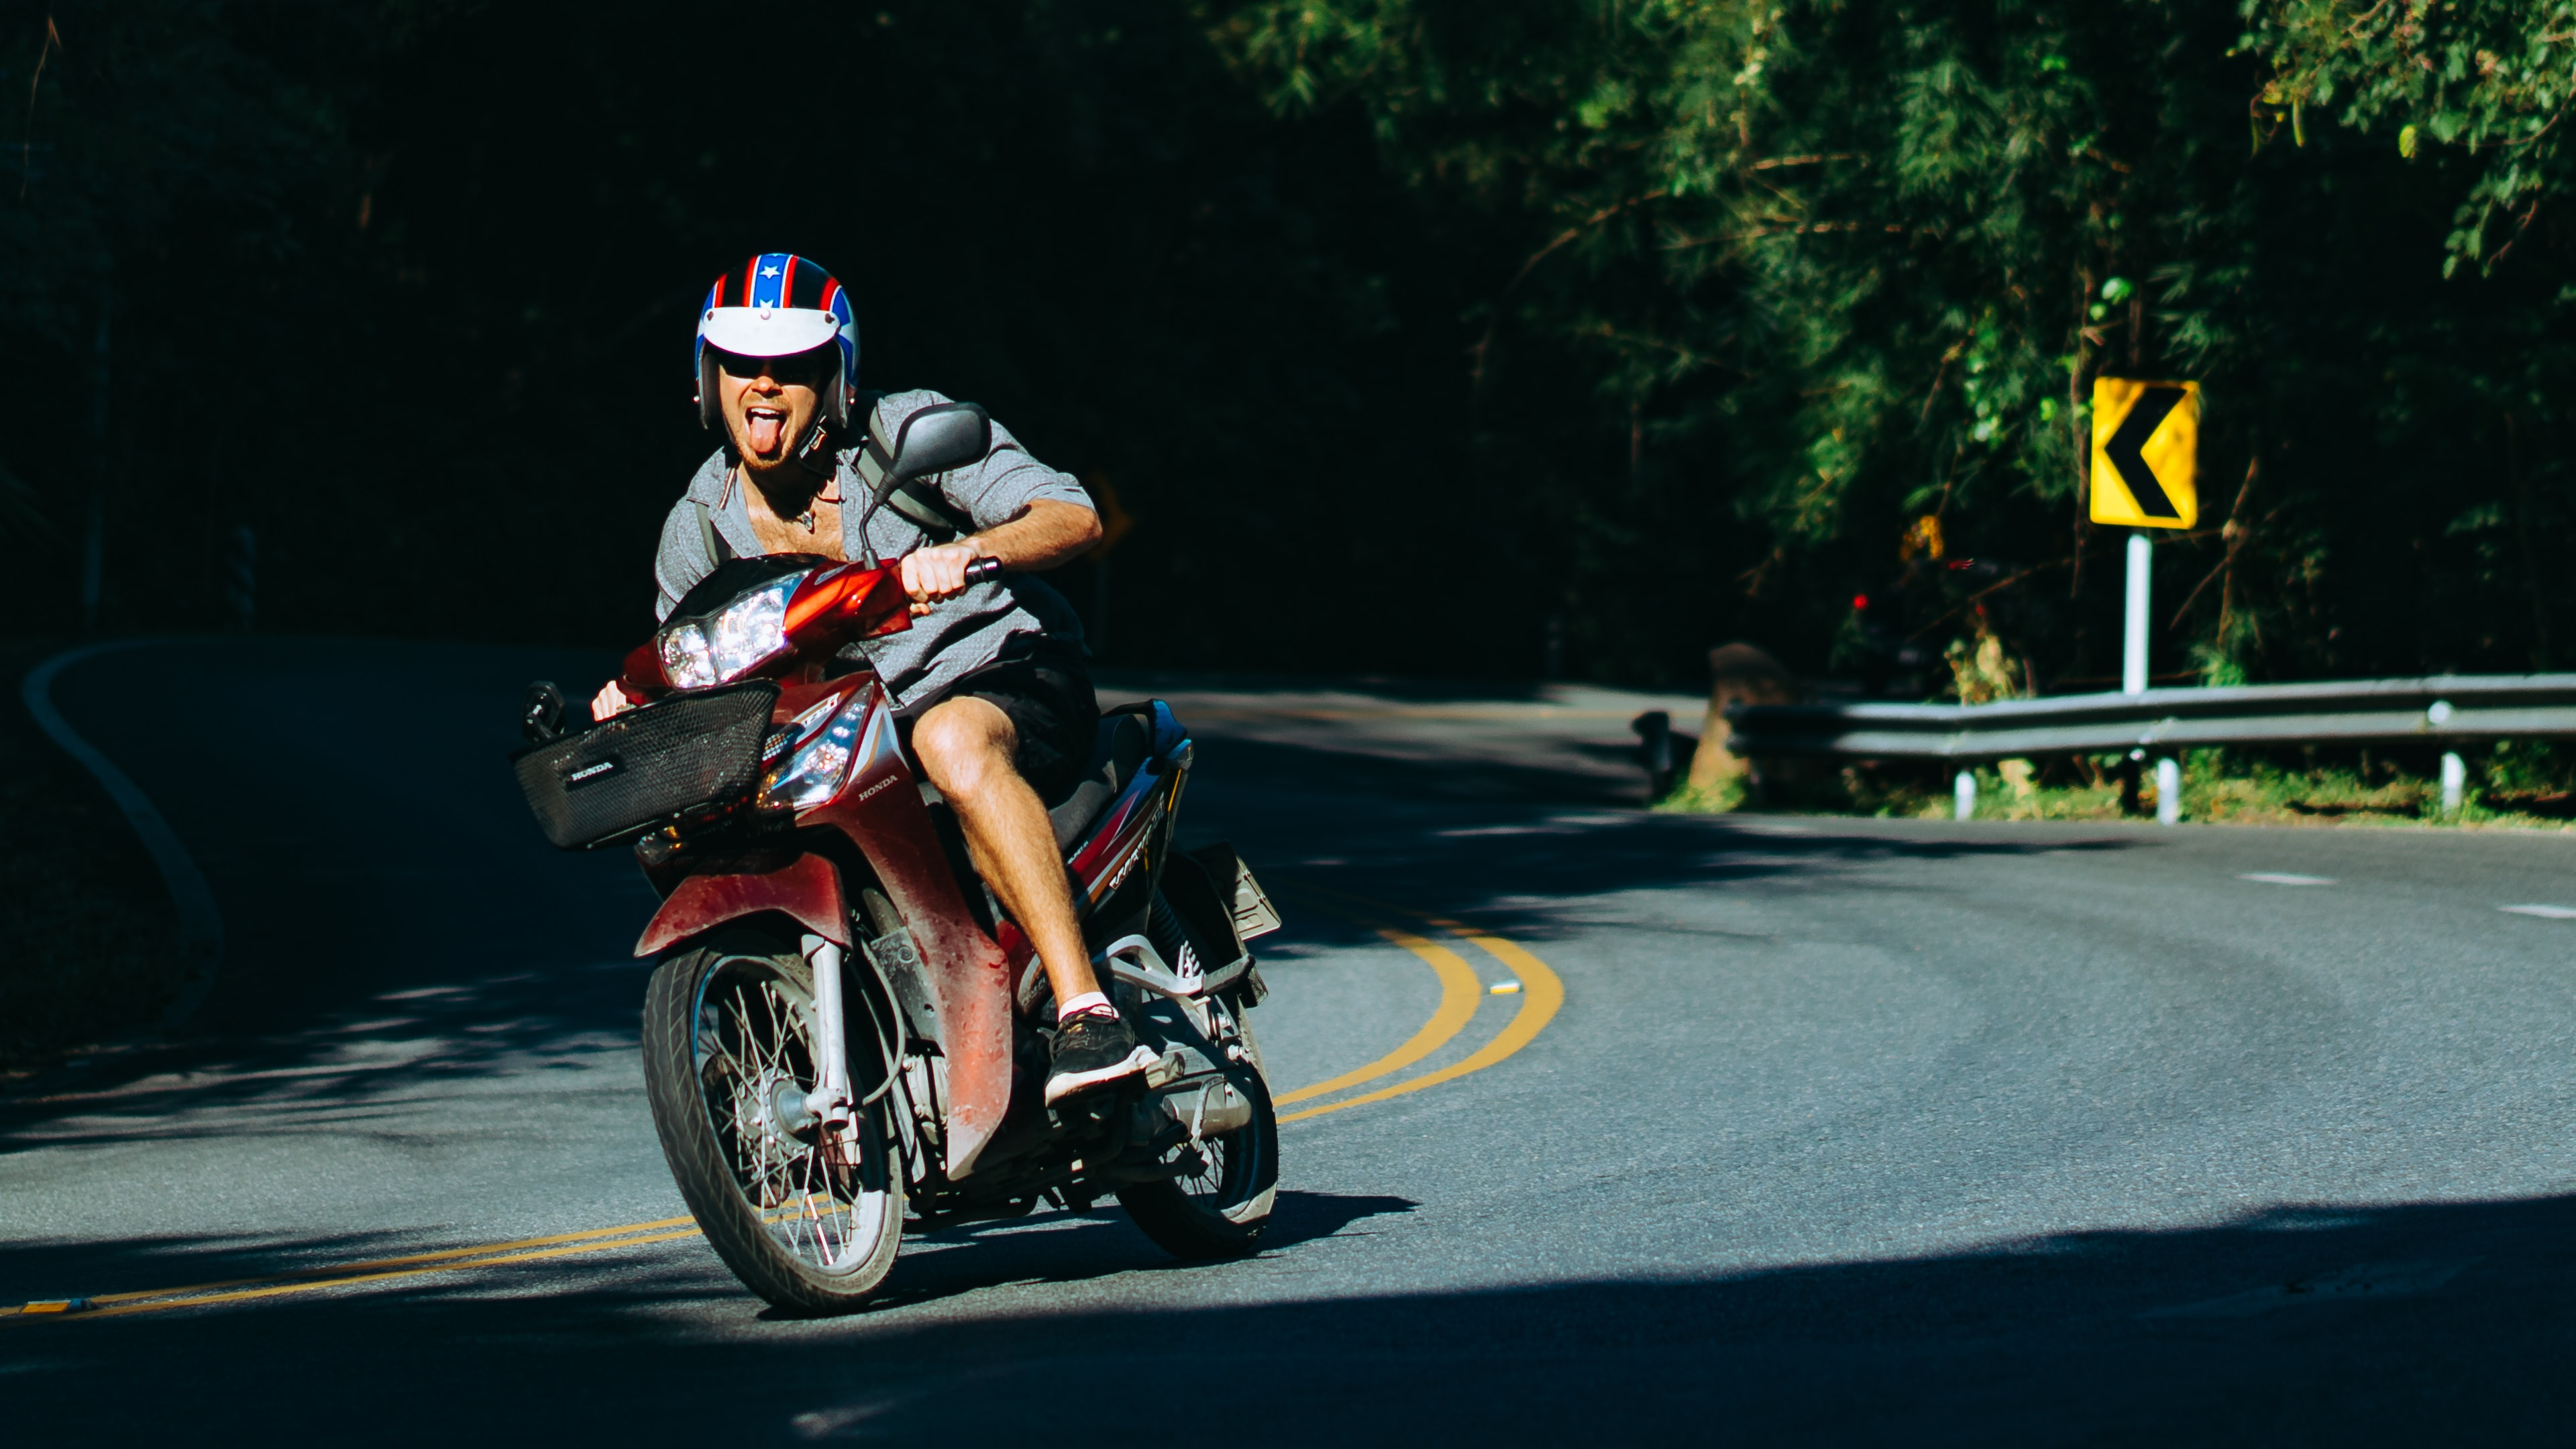 man riding motorcycle on curved road